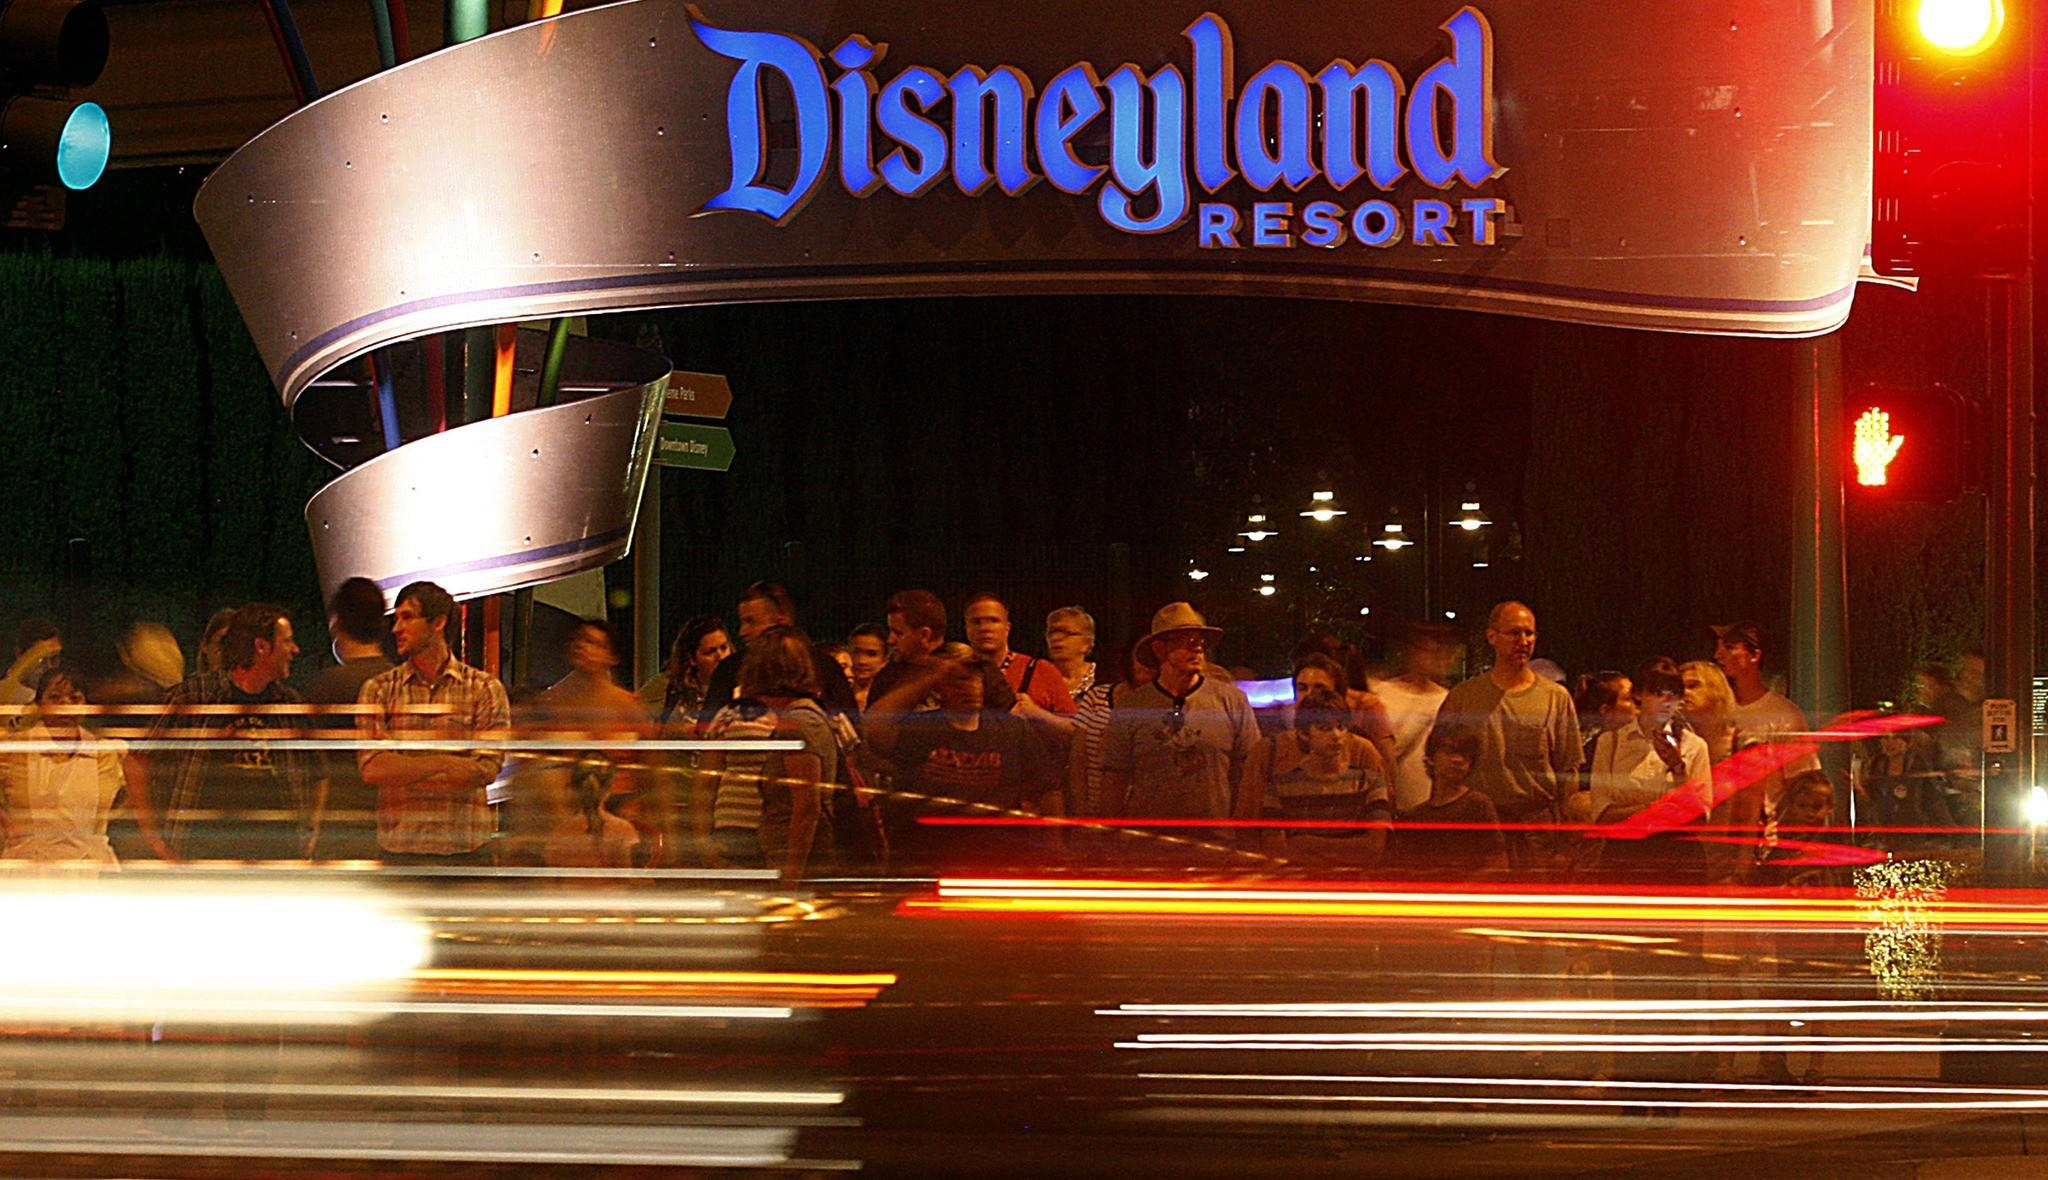 Disneyland visitors wait to cross Harbor Boulevard on its eastern side. The theme park has lived up to Walt Disney's aim to create a fantasyland hidden away from the metropolis around it, though its architecture has seeped out onto the boulevard to beckon tourists and residents alike. (Luis Sinco / Los Angeles Times)